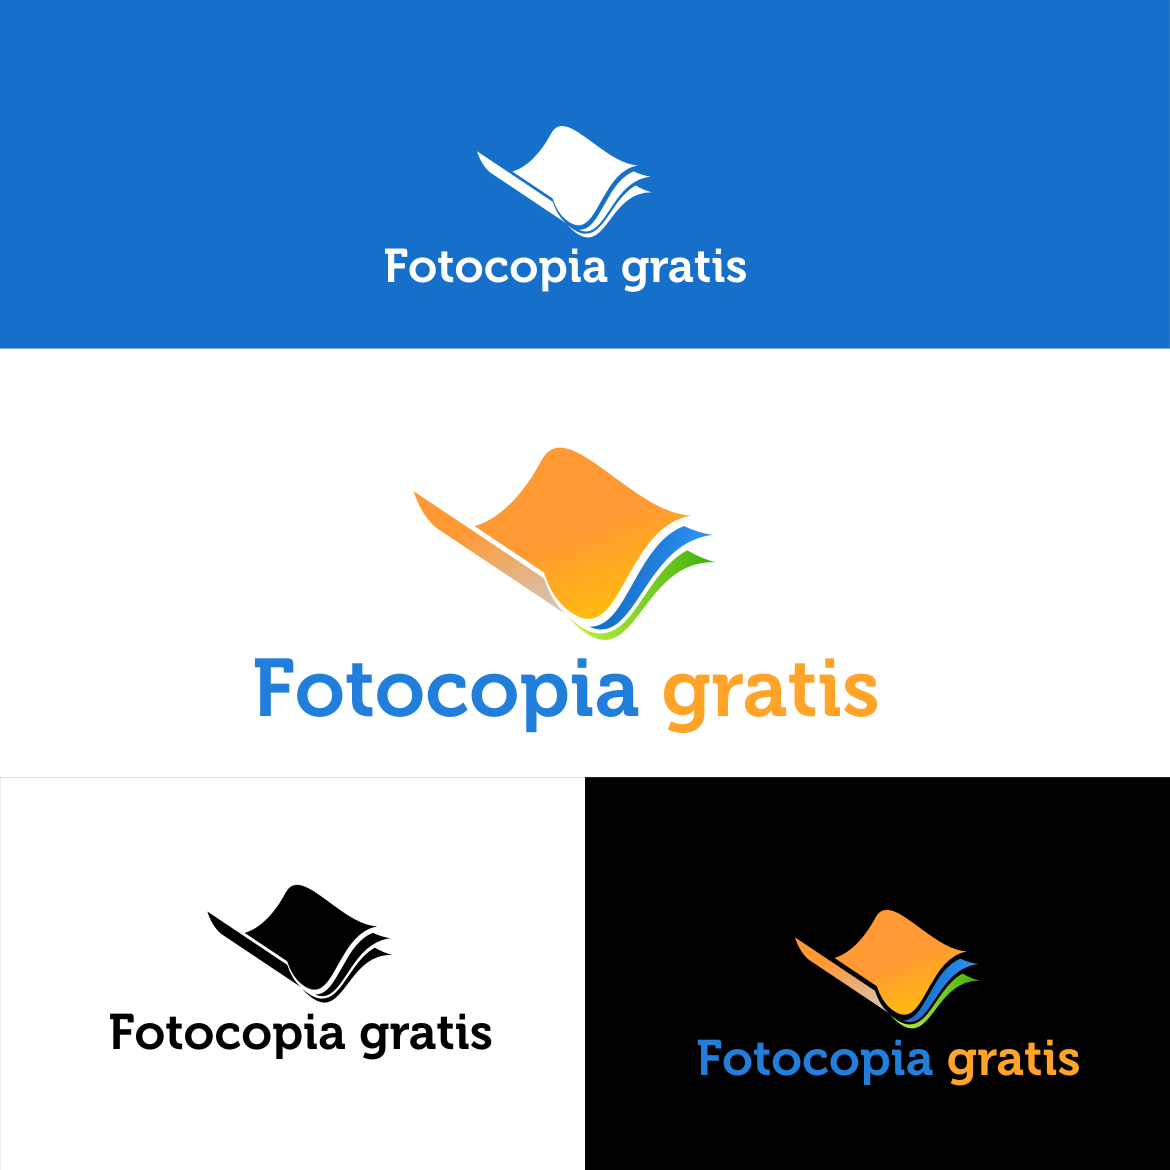 Logo Design by rifatz - Entry No. 66 in the Logo Design Contest Inspiring Logo Design for Fotocopiagratis.